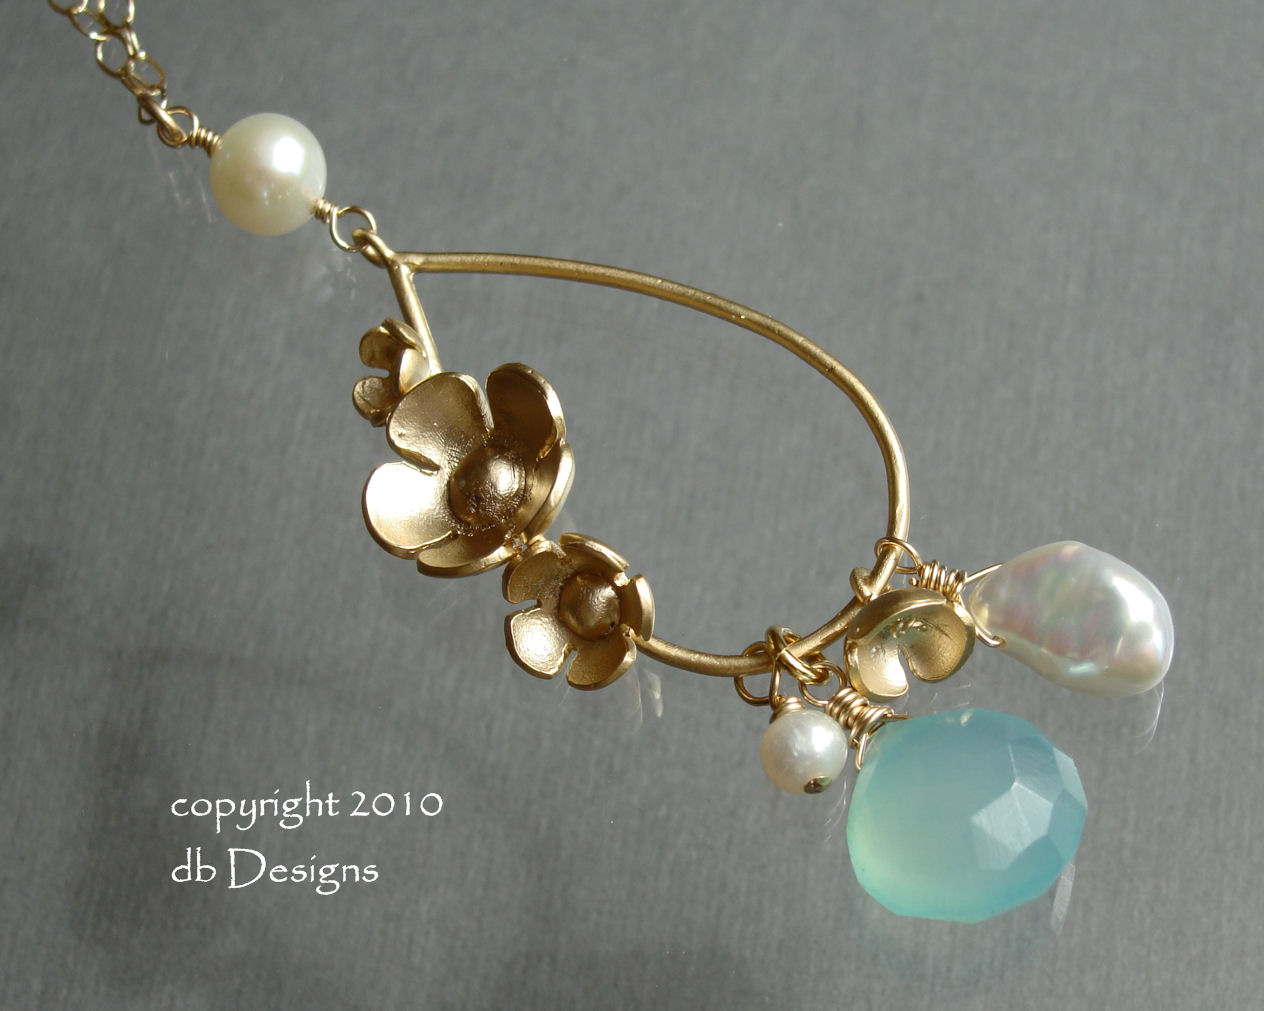 Golden Floral Bouquet Necklace with dangles of Faceted Custom Gemstone and cultured pearls-Golden Floral Bouquet necklace with dangles of custome faceted gemstone and cultured pearls, unique custom jewelry gift for bridesmaids, mothers, grandmothers, flower pendant, gold filled chain